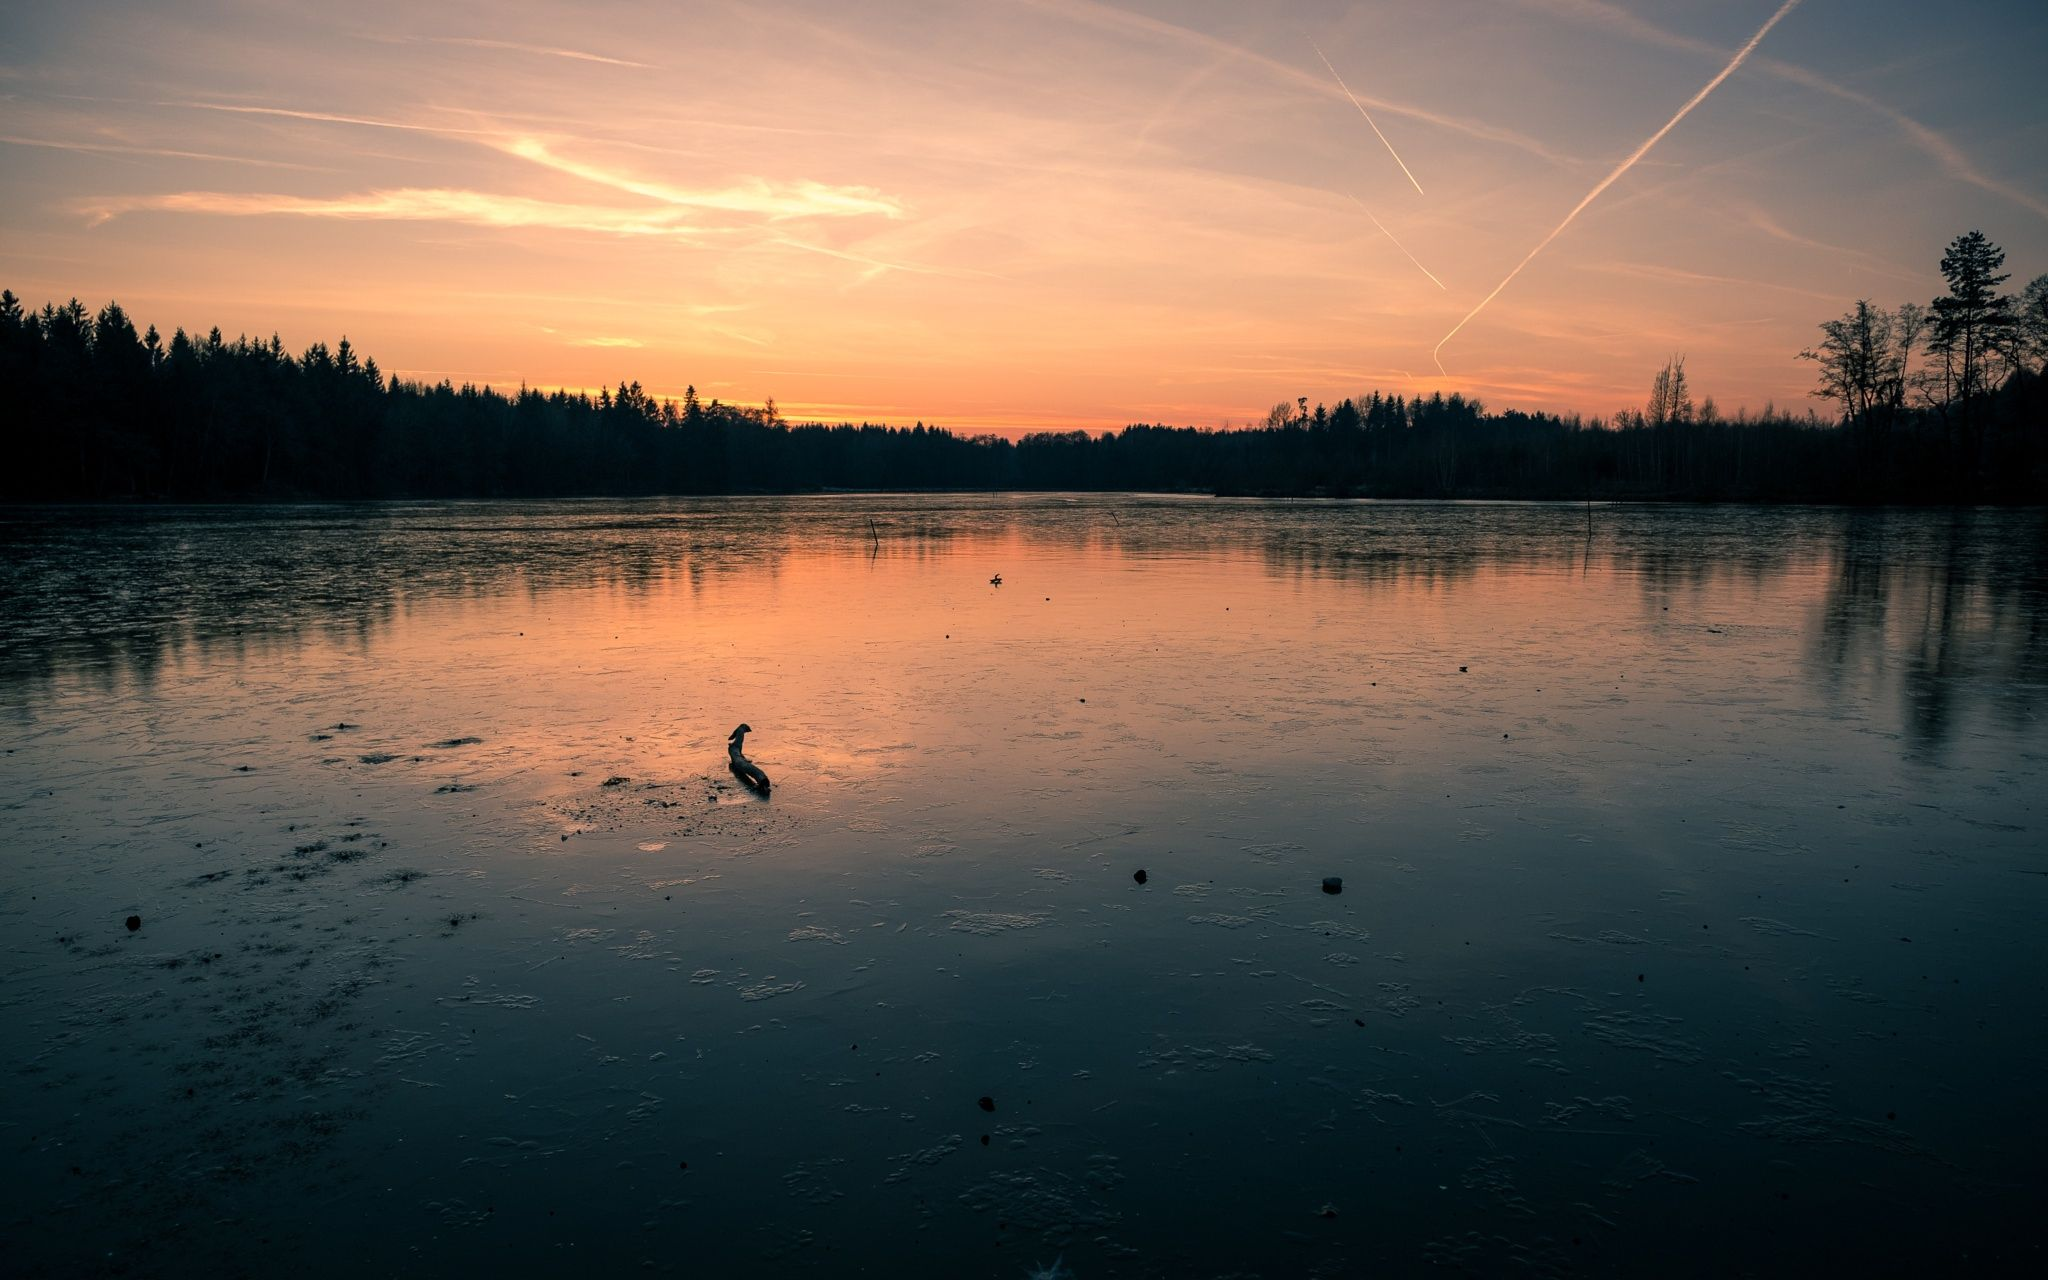 The Frozen Lake - Follow my photographic journey on my blog: http://www.tommayphotography.com/